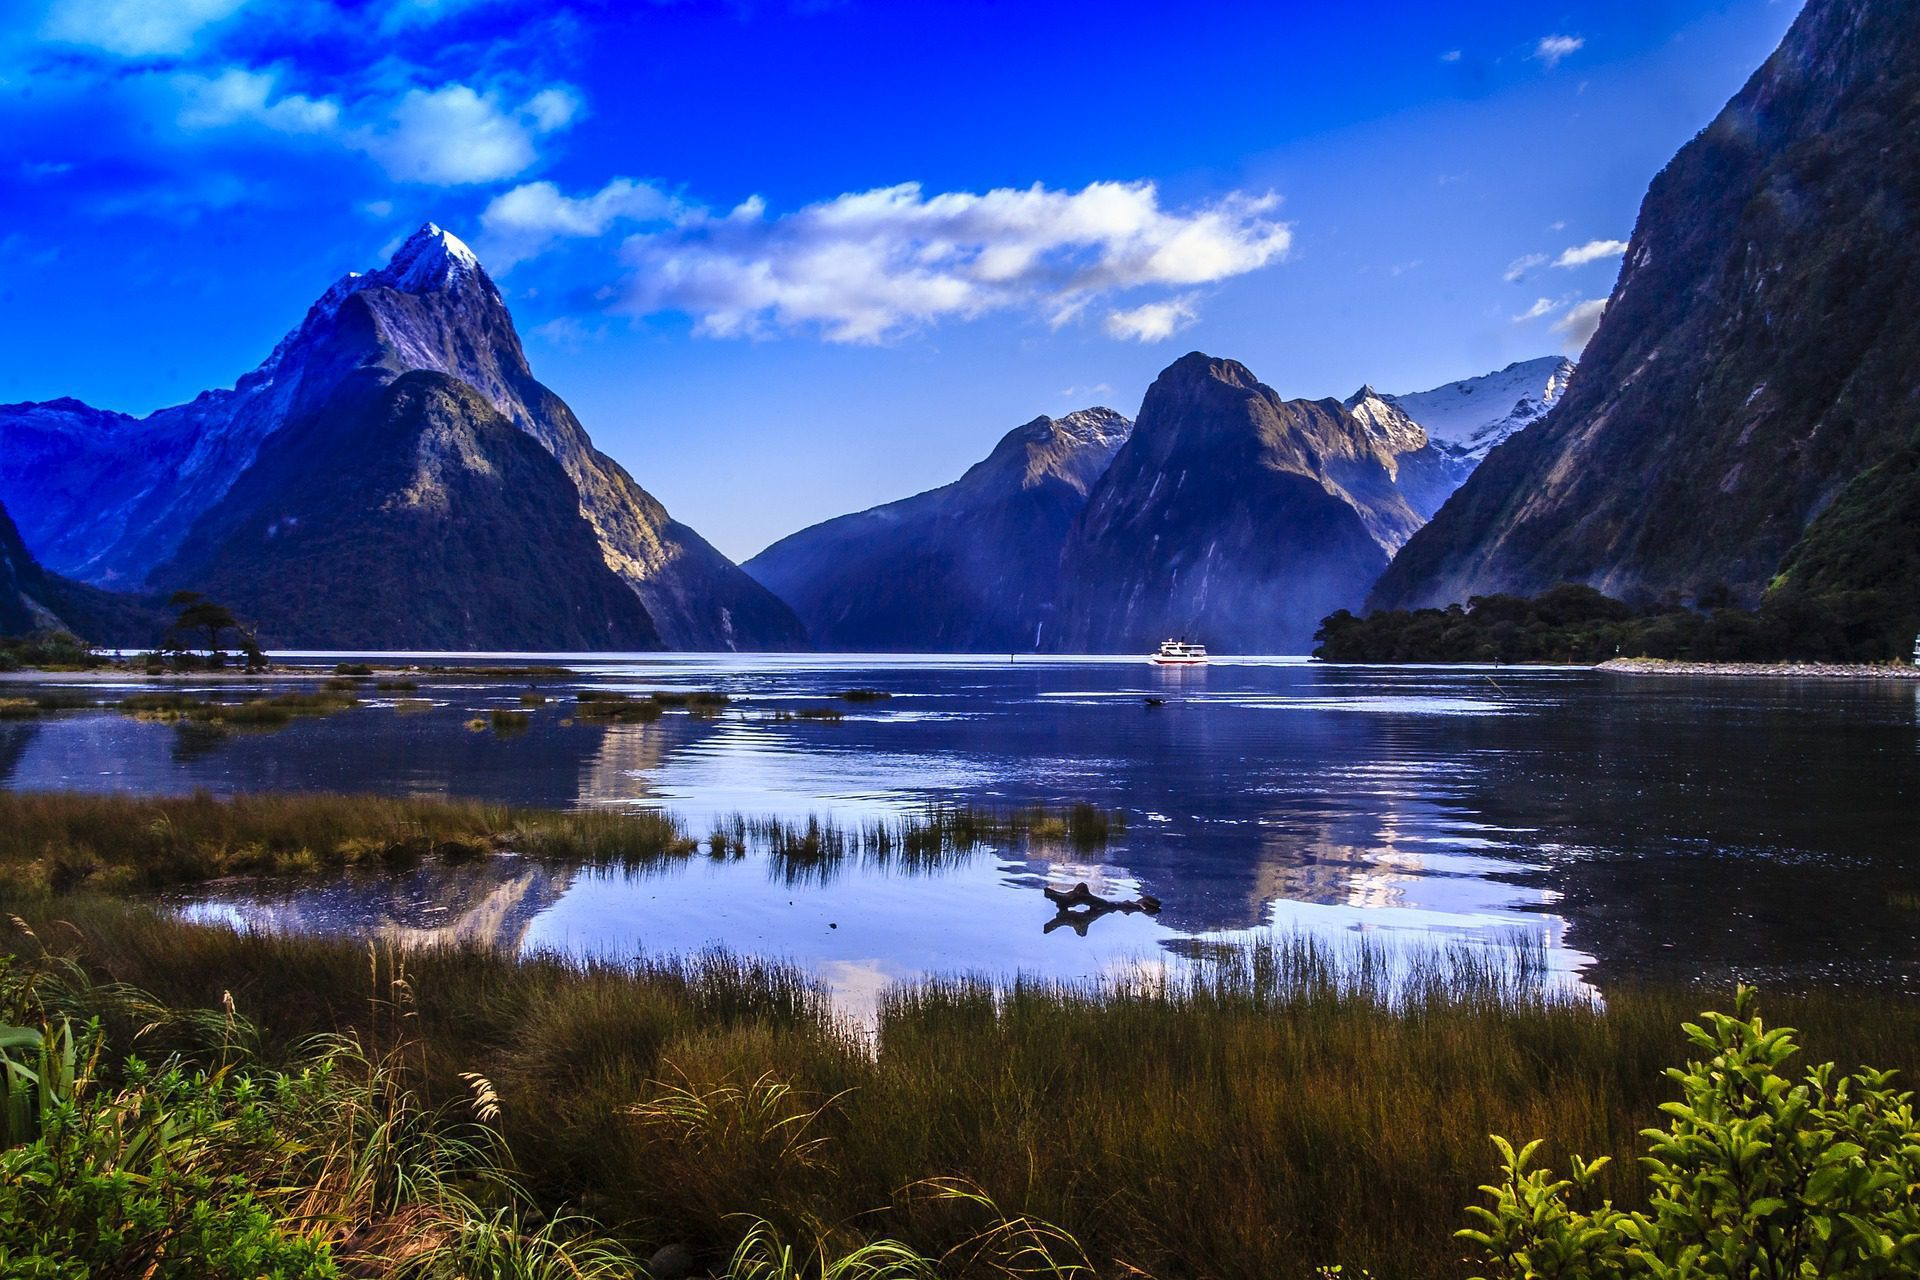 dramatic fjord scenery in Fiordland on a clear day with reflecting peaks in the sound on New Zealand tour